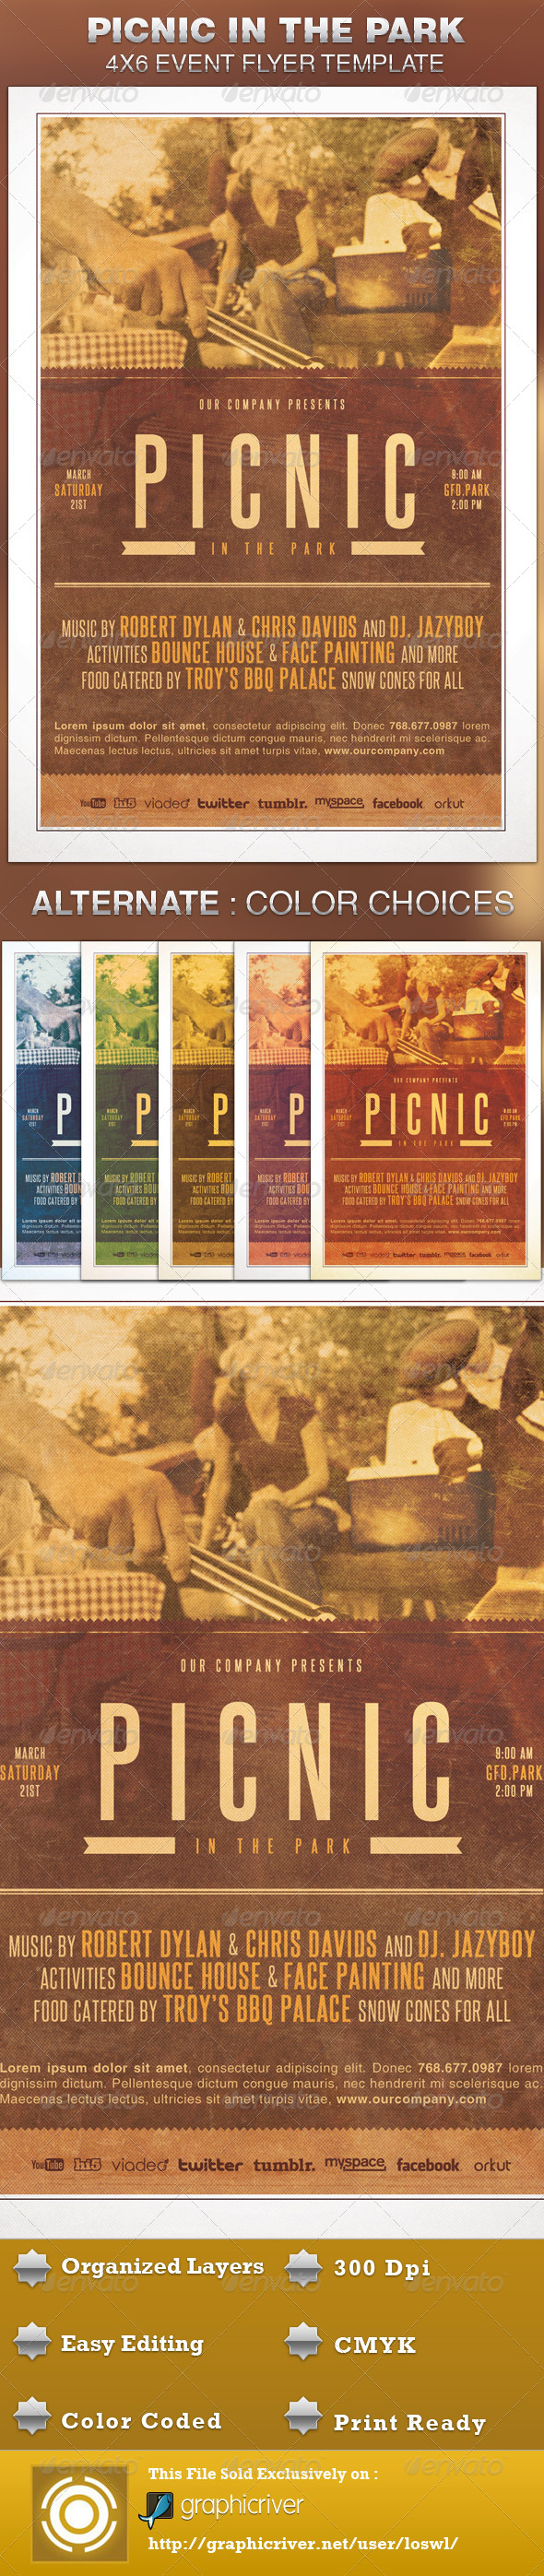 GraphicRiver Picnic in the Park Event Flyer Template 4948082